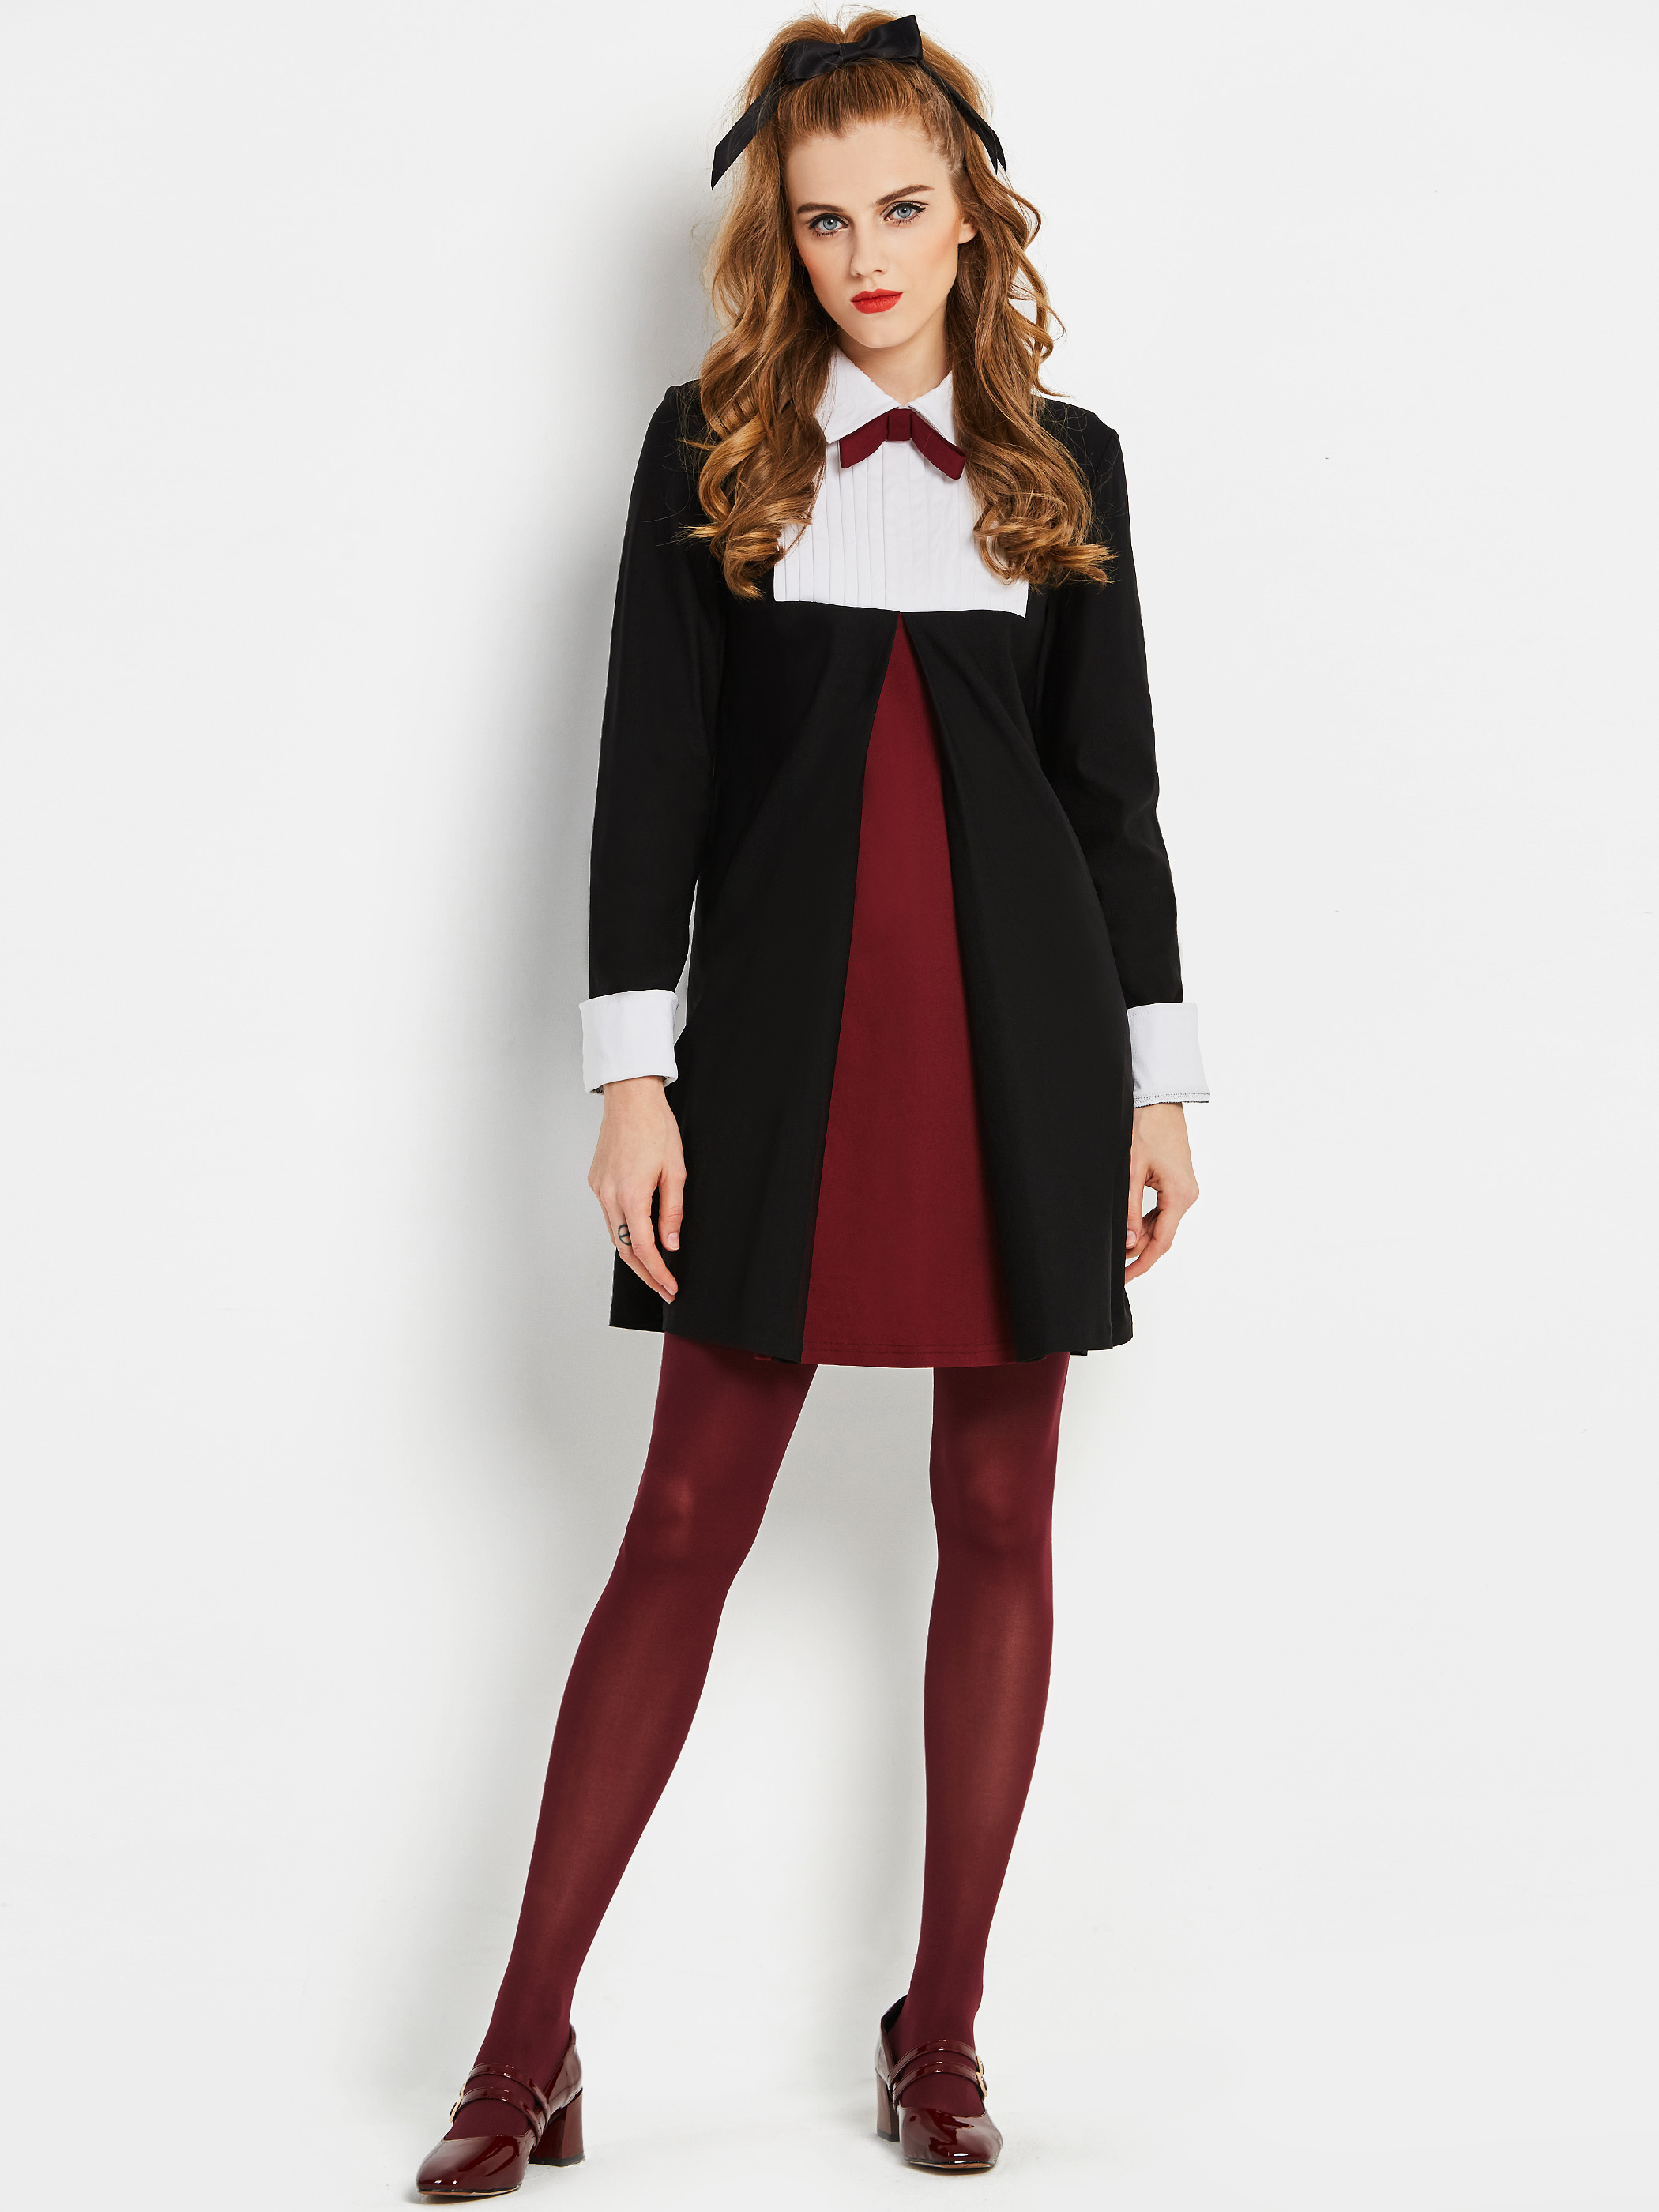 de2ed41ded Casual dresses are the most commonly seen dresses for women among all  clothing. A pair of black dressed can make woman look soft and charming more  than any ...